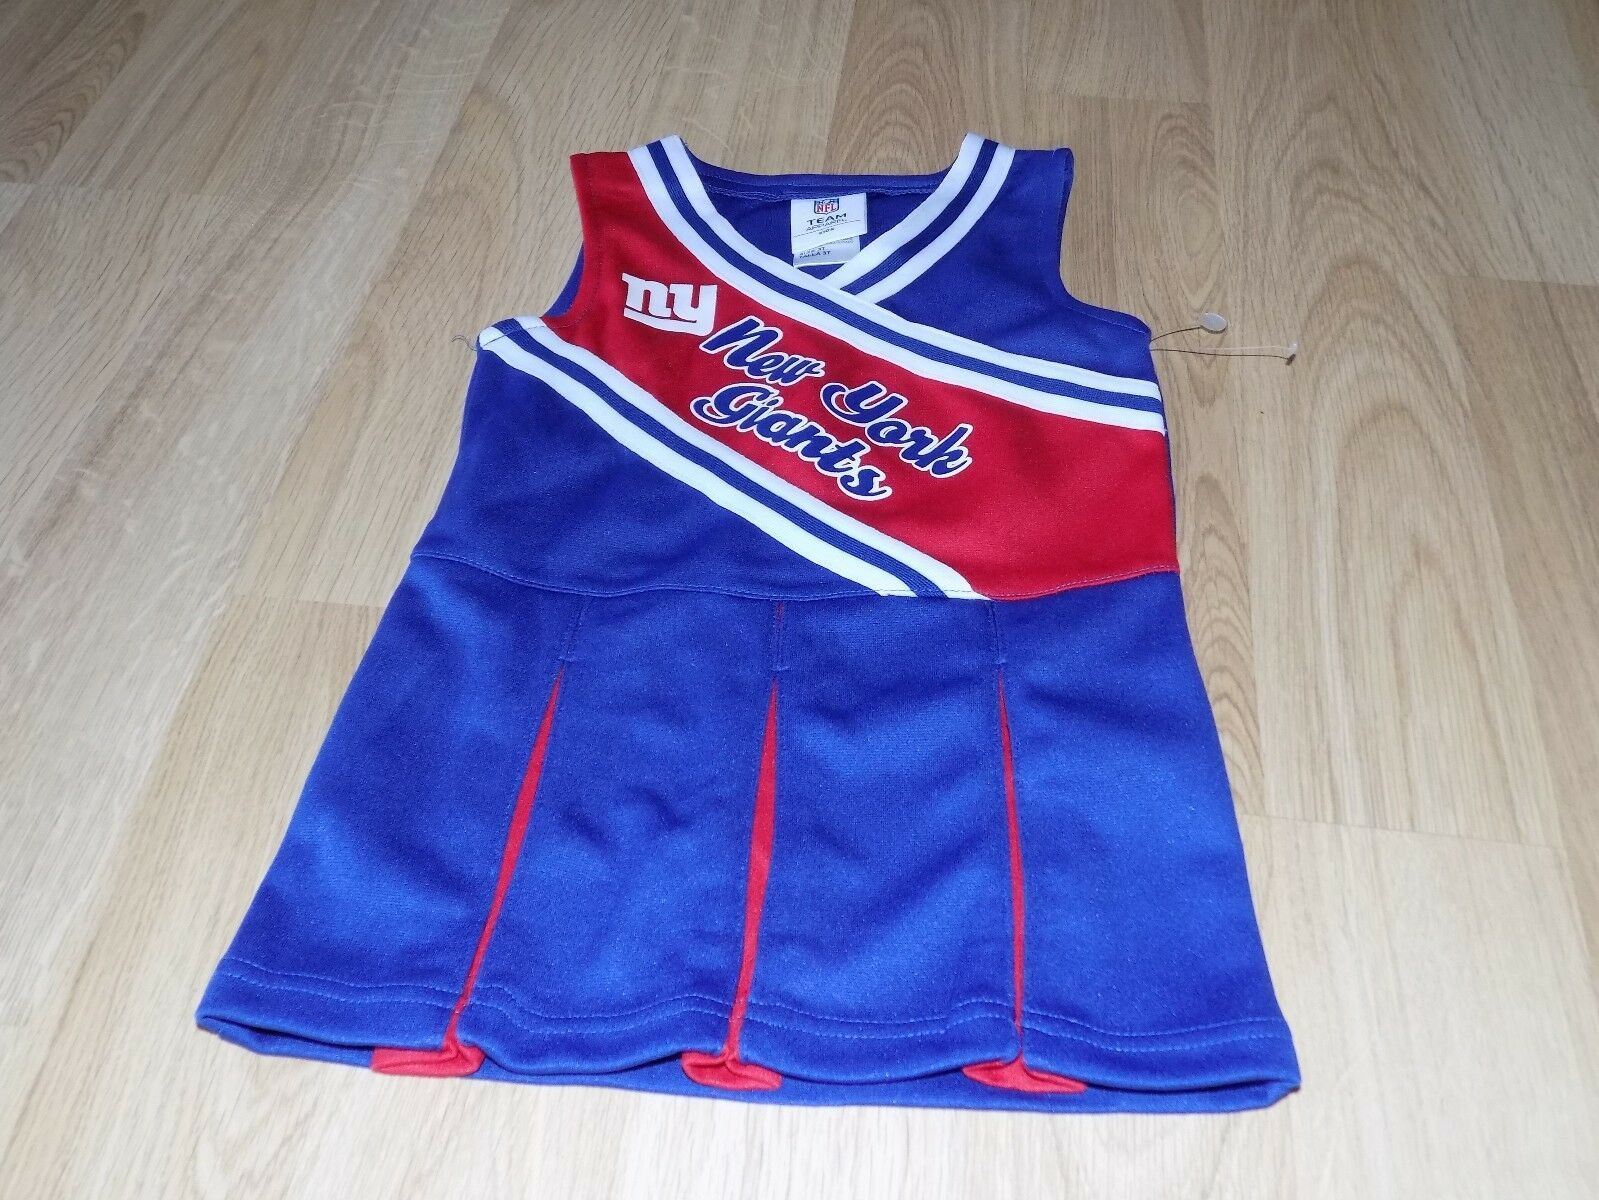 Primary image for Size 3T NFL Team New York Giants Blue Red Cheerleader Cheer Uniform Dress New